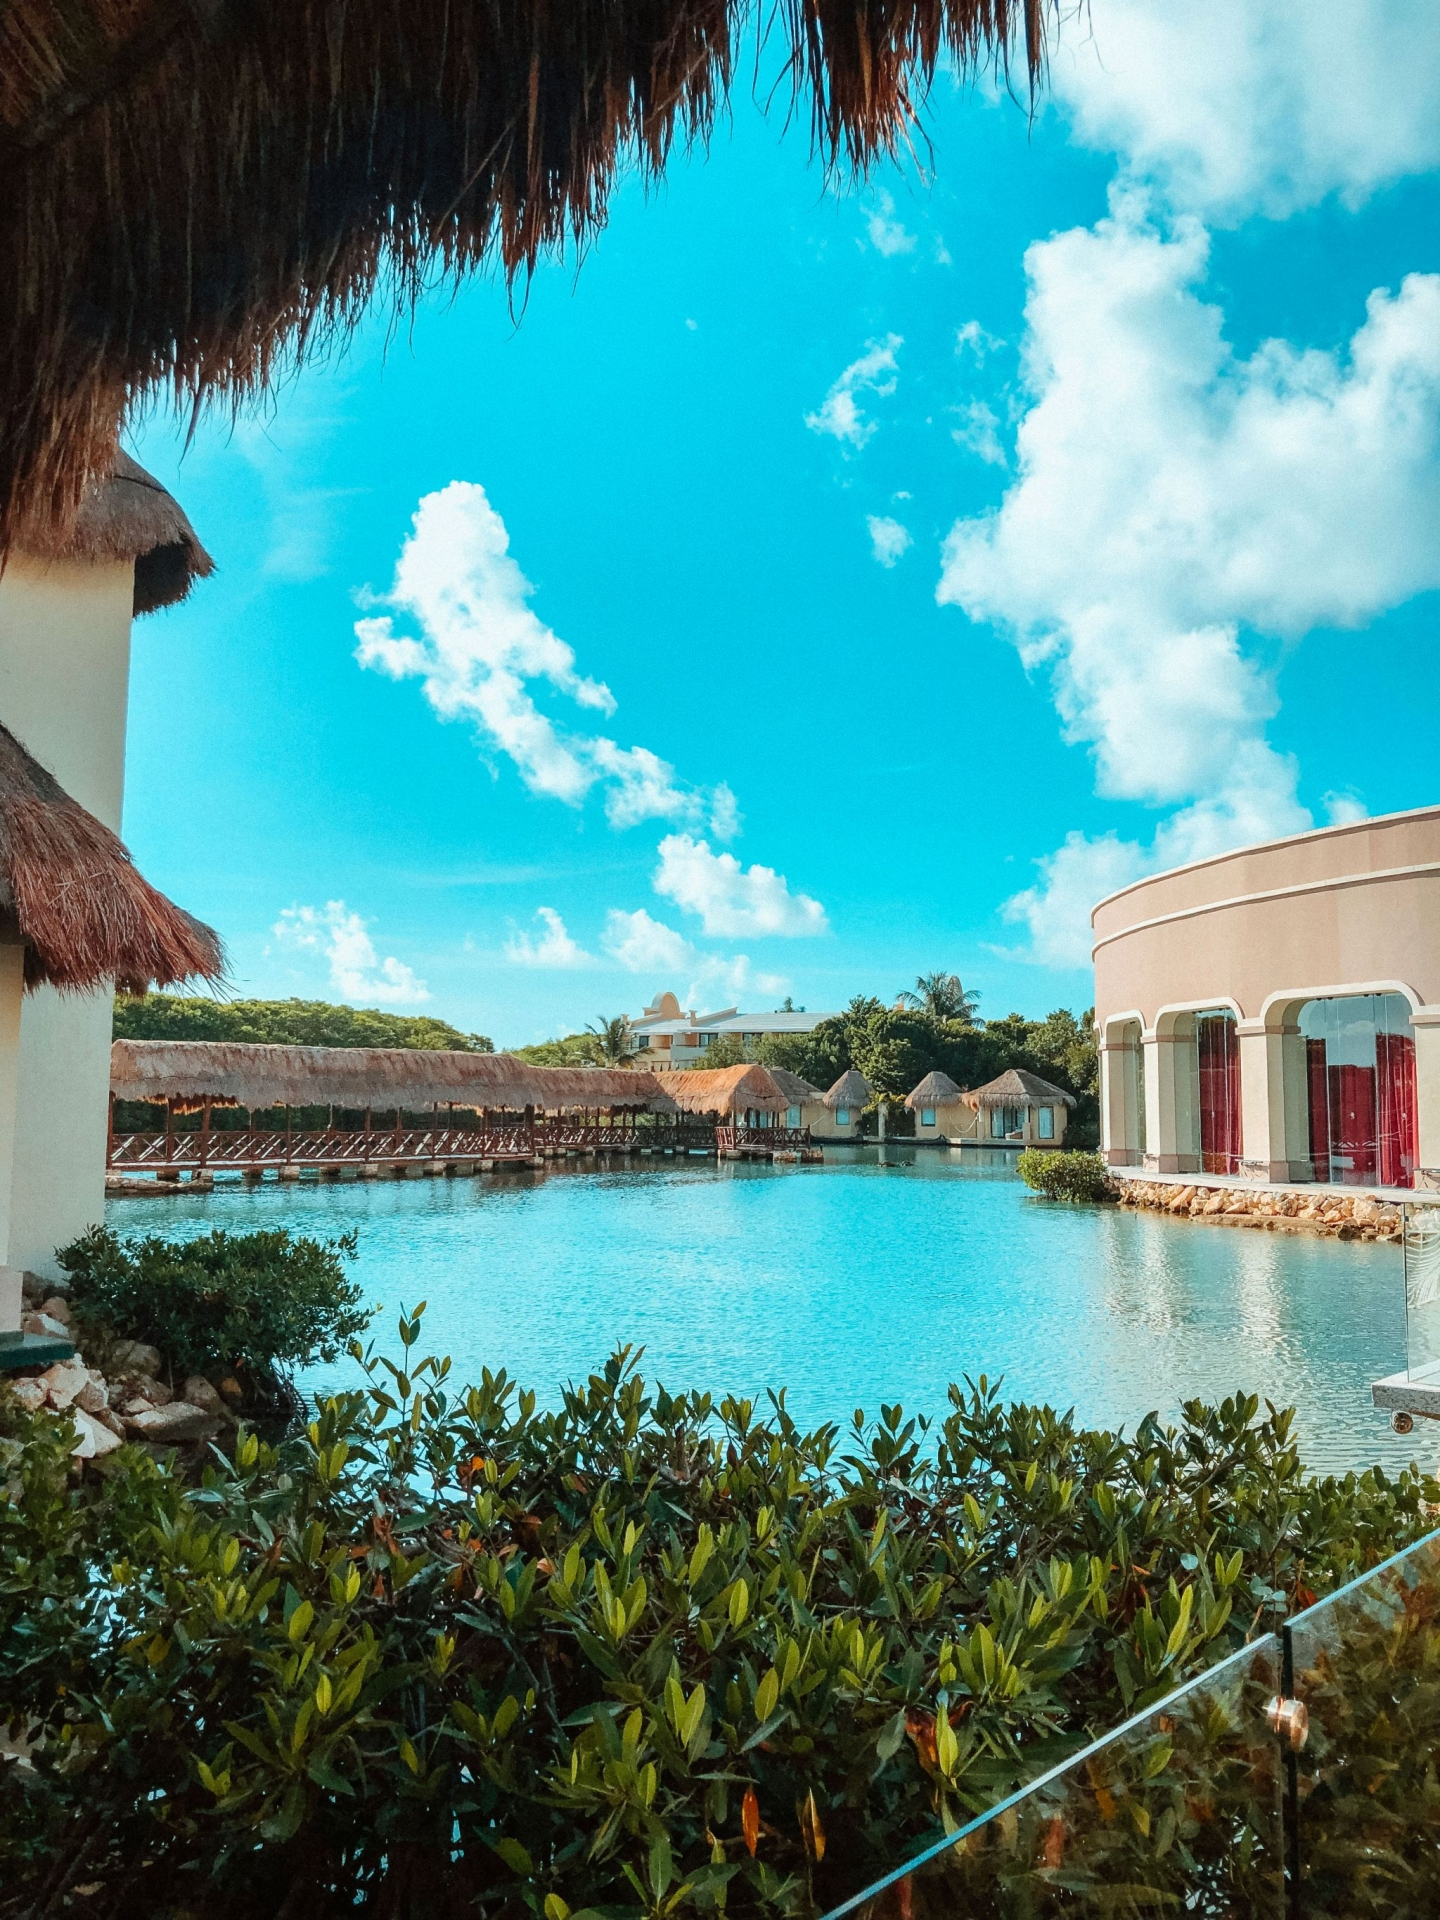 Our Honeymoon at TRS Yucatan in Mexico